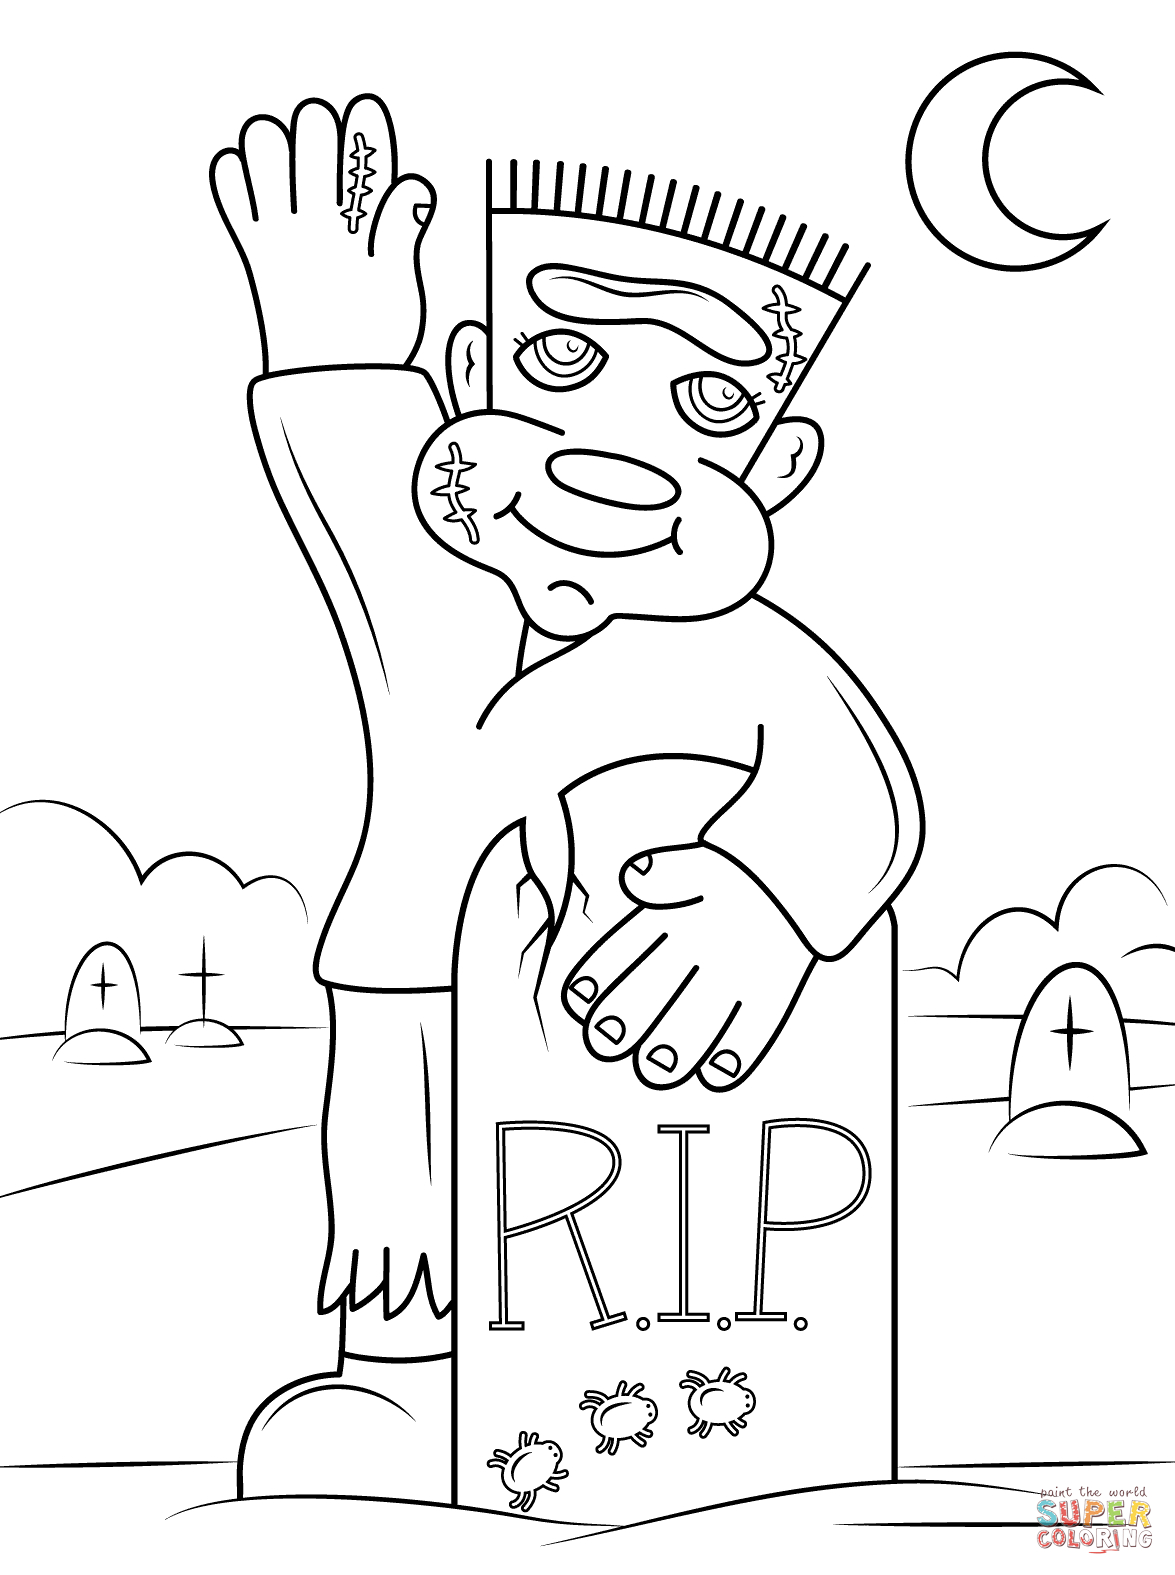 Halloween Frankenstein Coloring Pages Cute Frankenstein Coloring Page Free Printable Coloring Pages